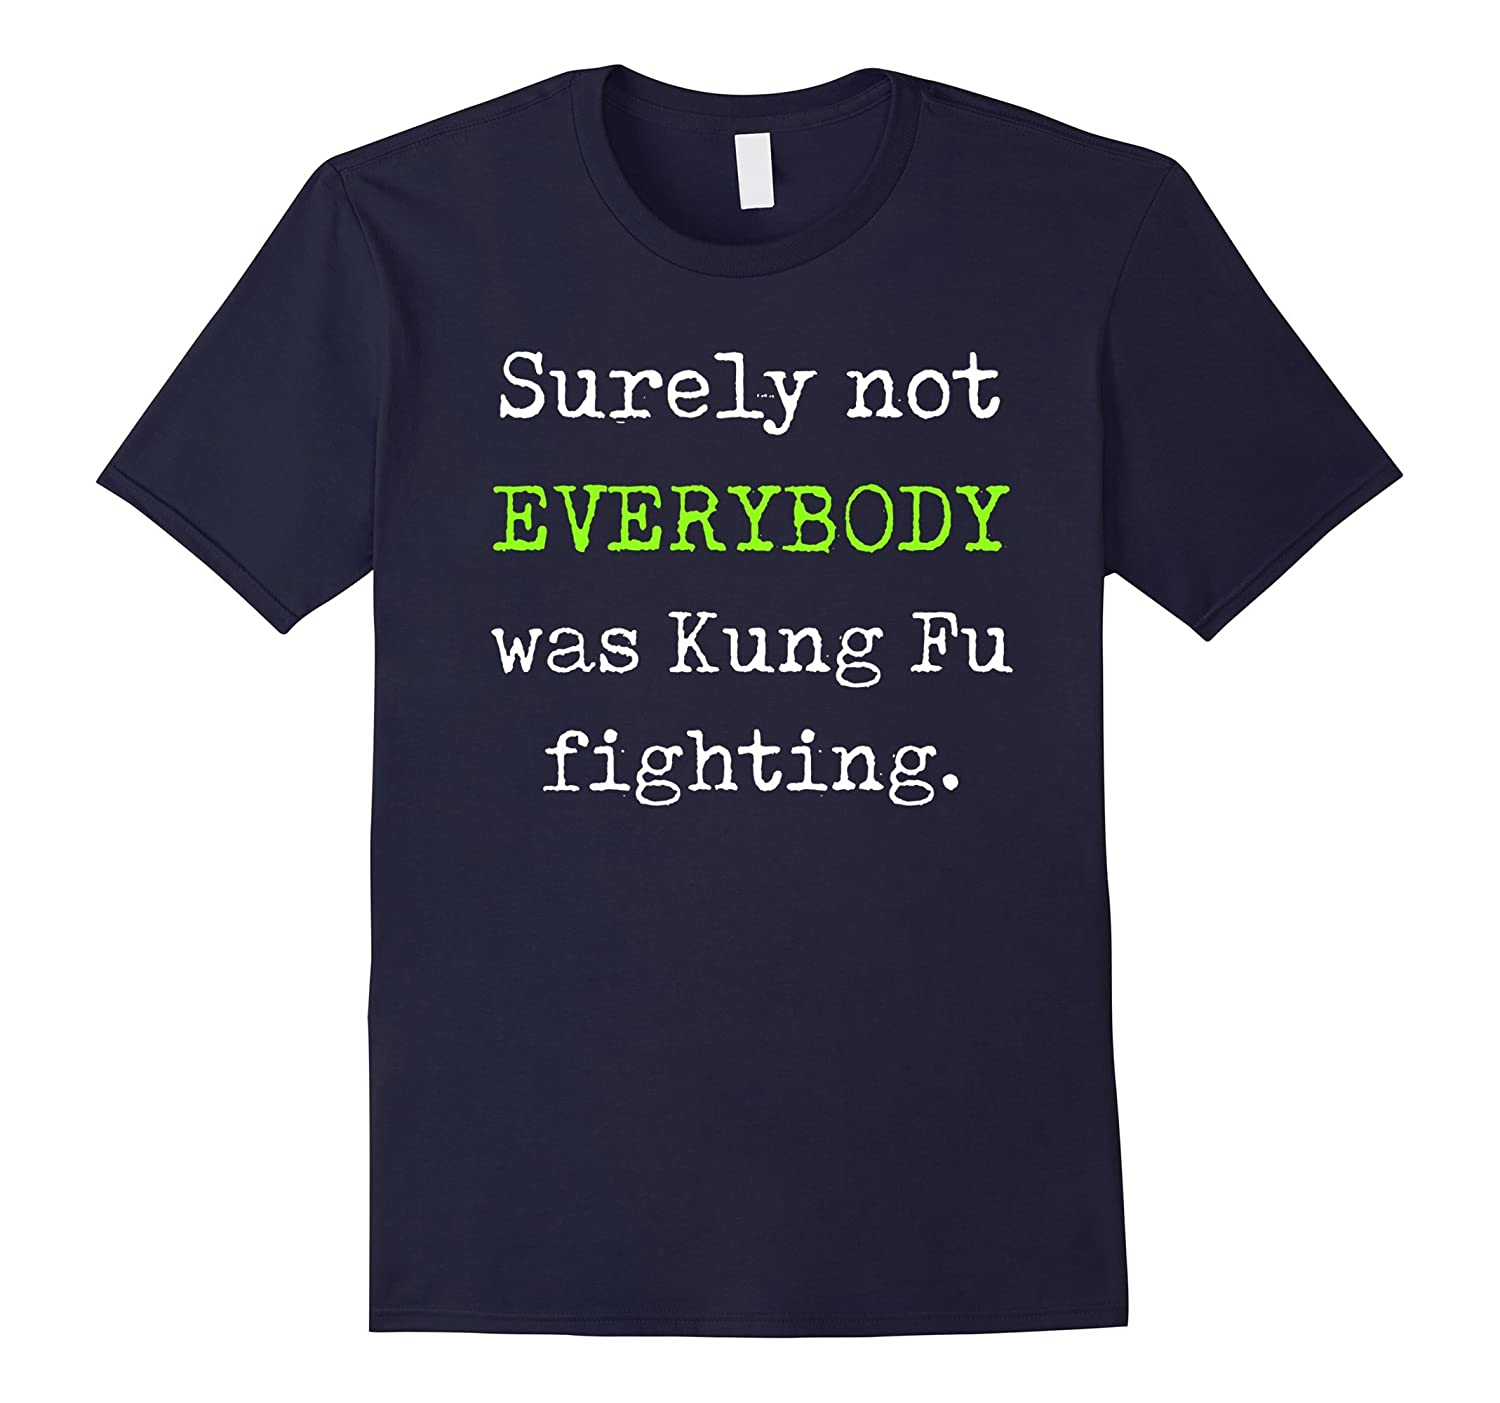 Surely not everybody was kung fu fighting tshirt-BN